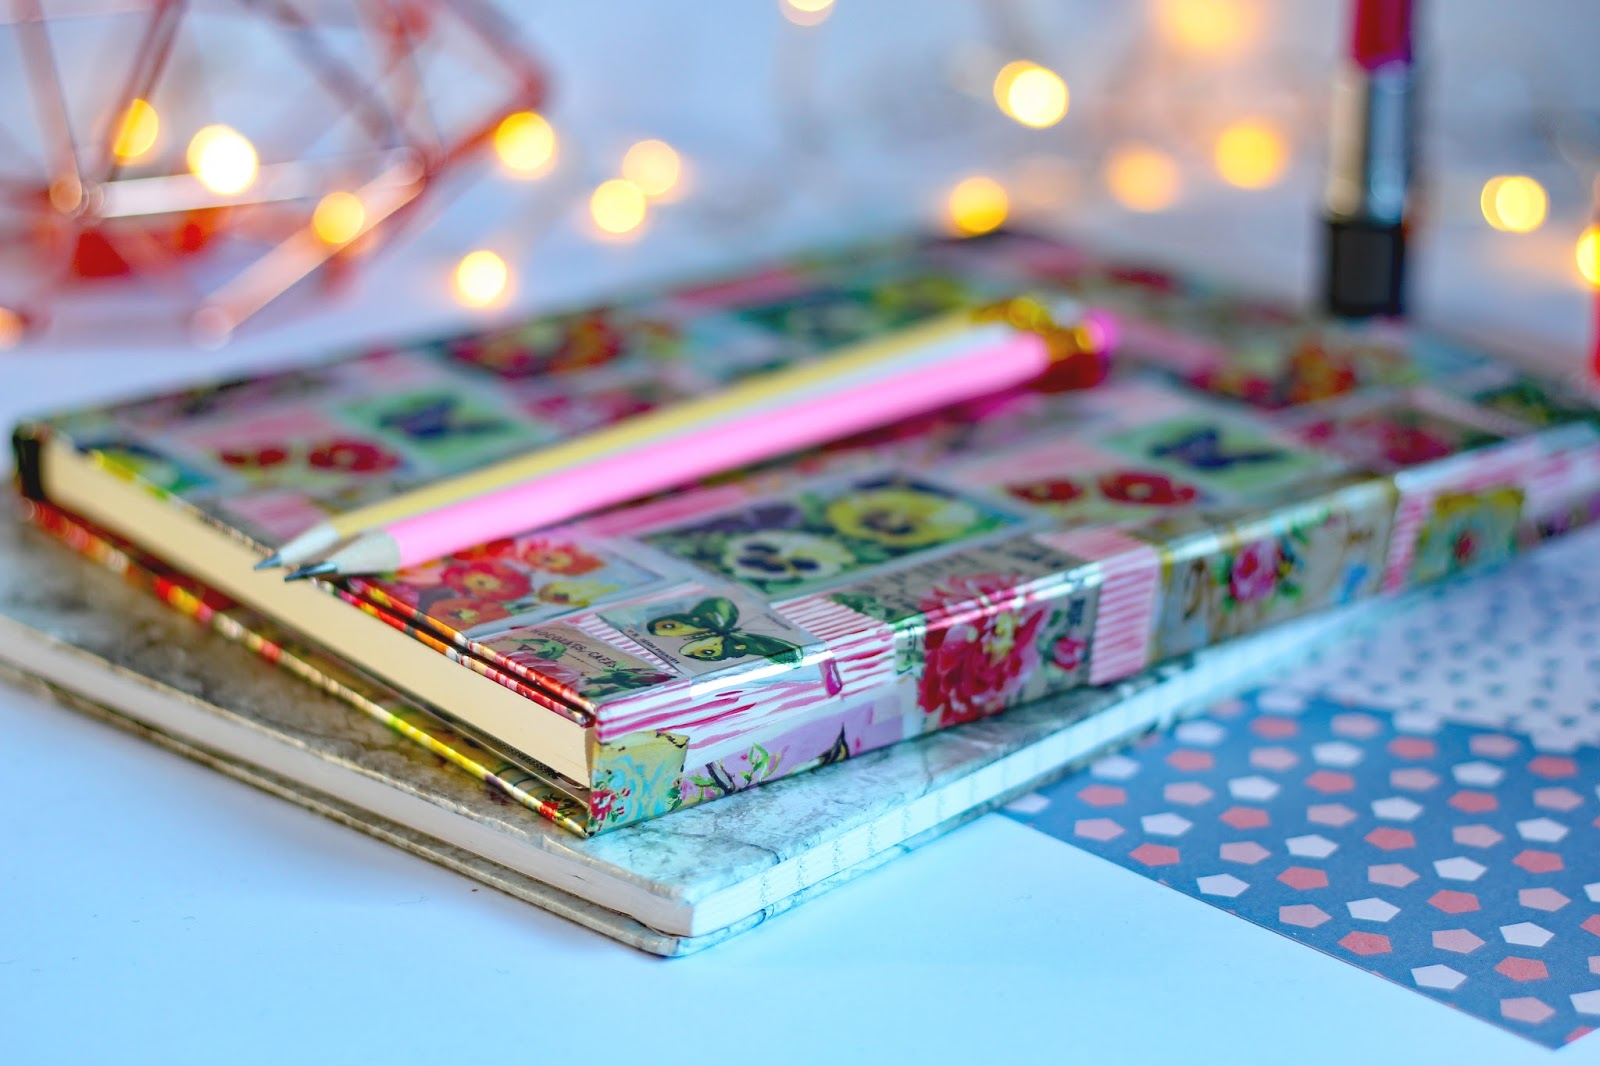 Mental Health Favourites diary mental health illness notebooks Paperchase stationery